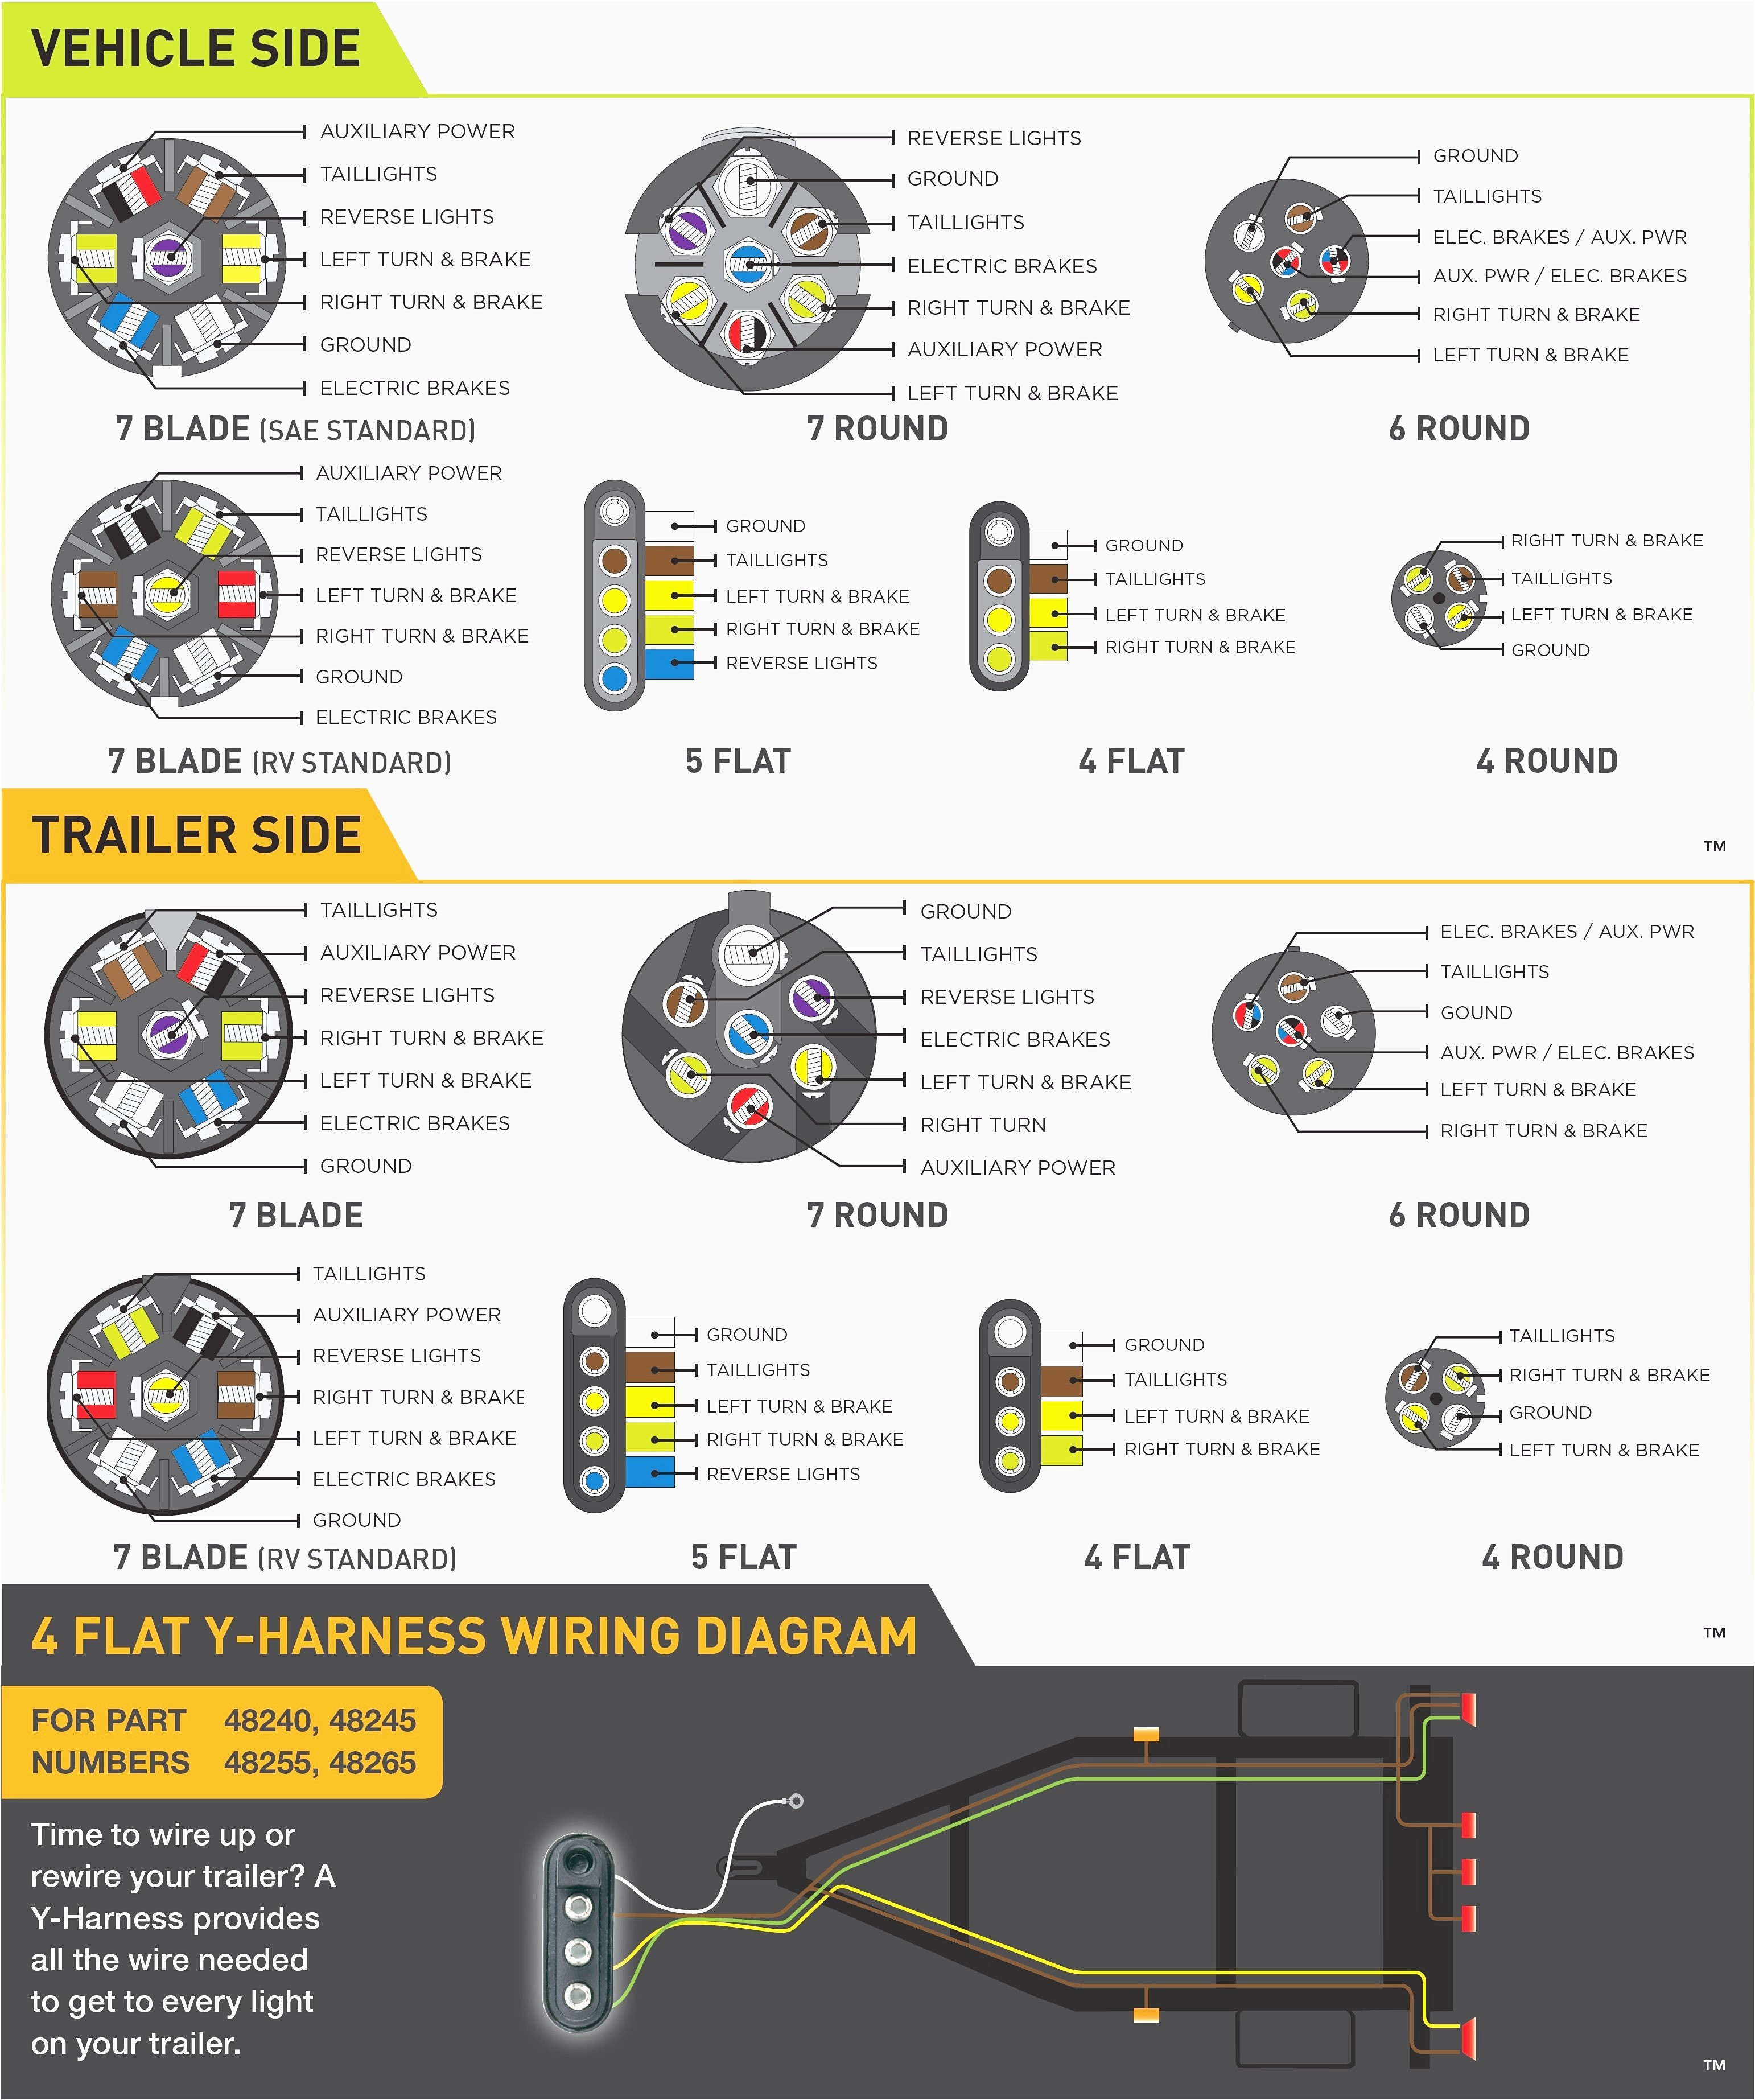 Towmaster Wiring Harness | Wiring Library - Down2Earth Trailer Wiring Diagram